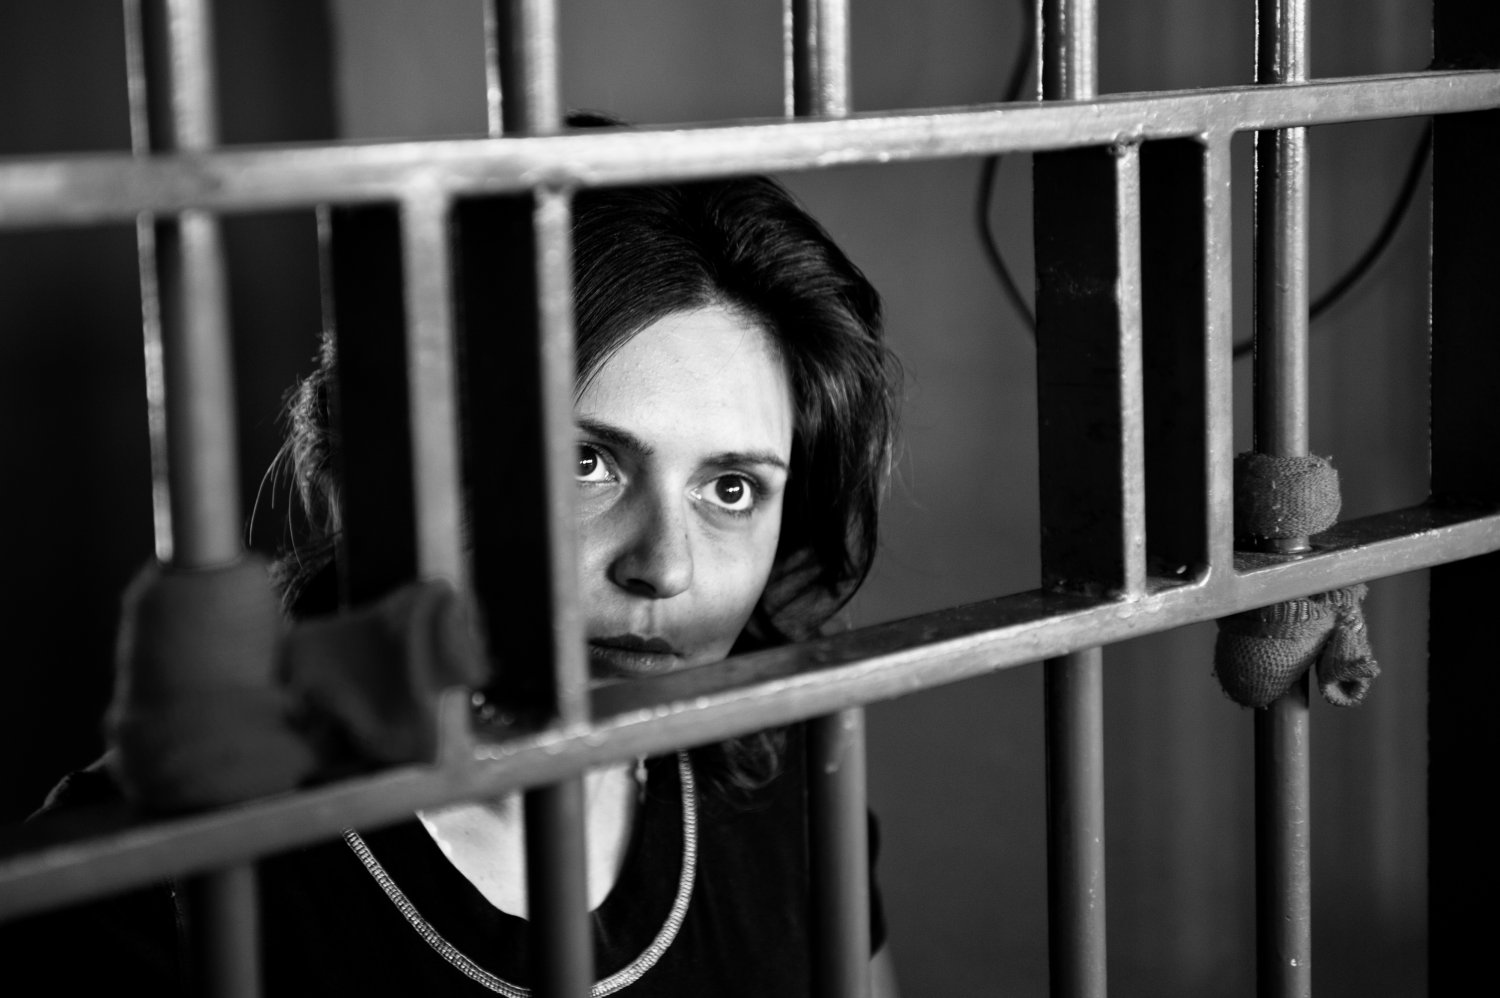 essays on women in prisons